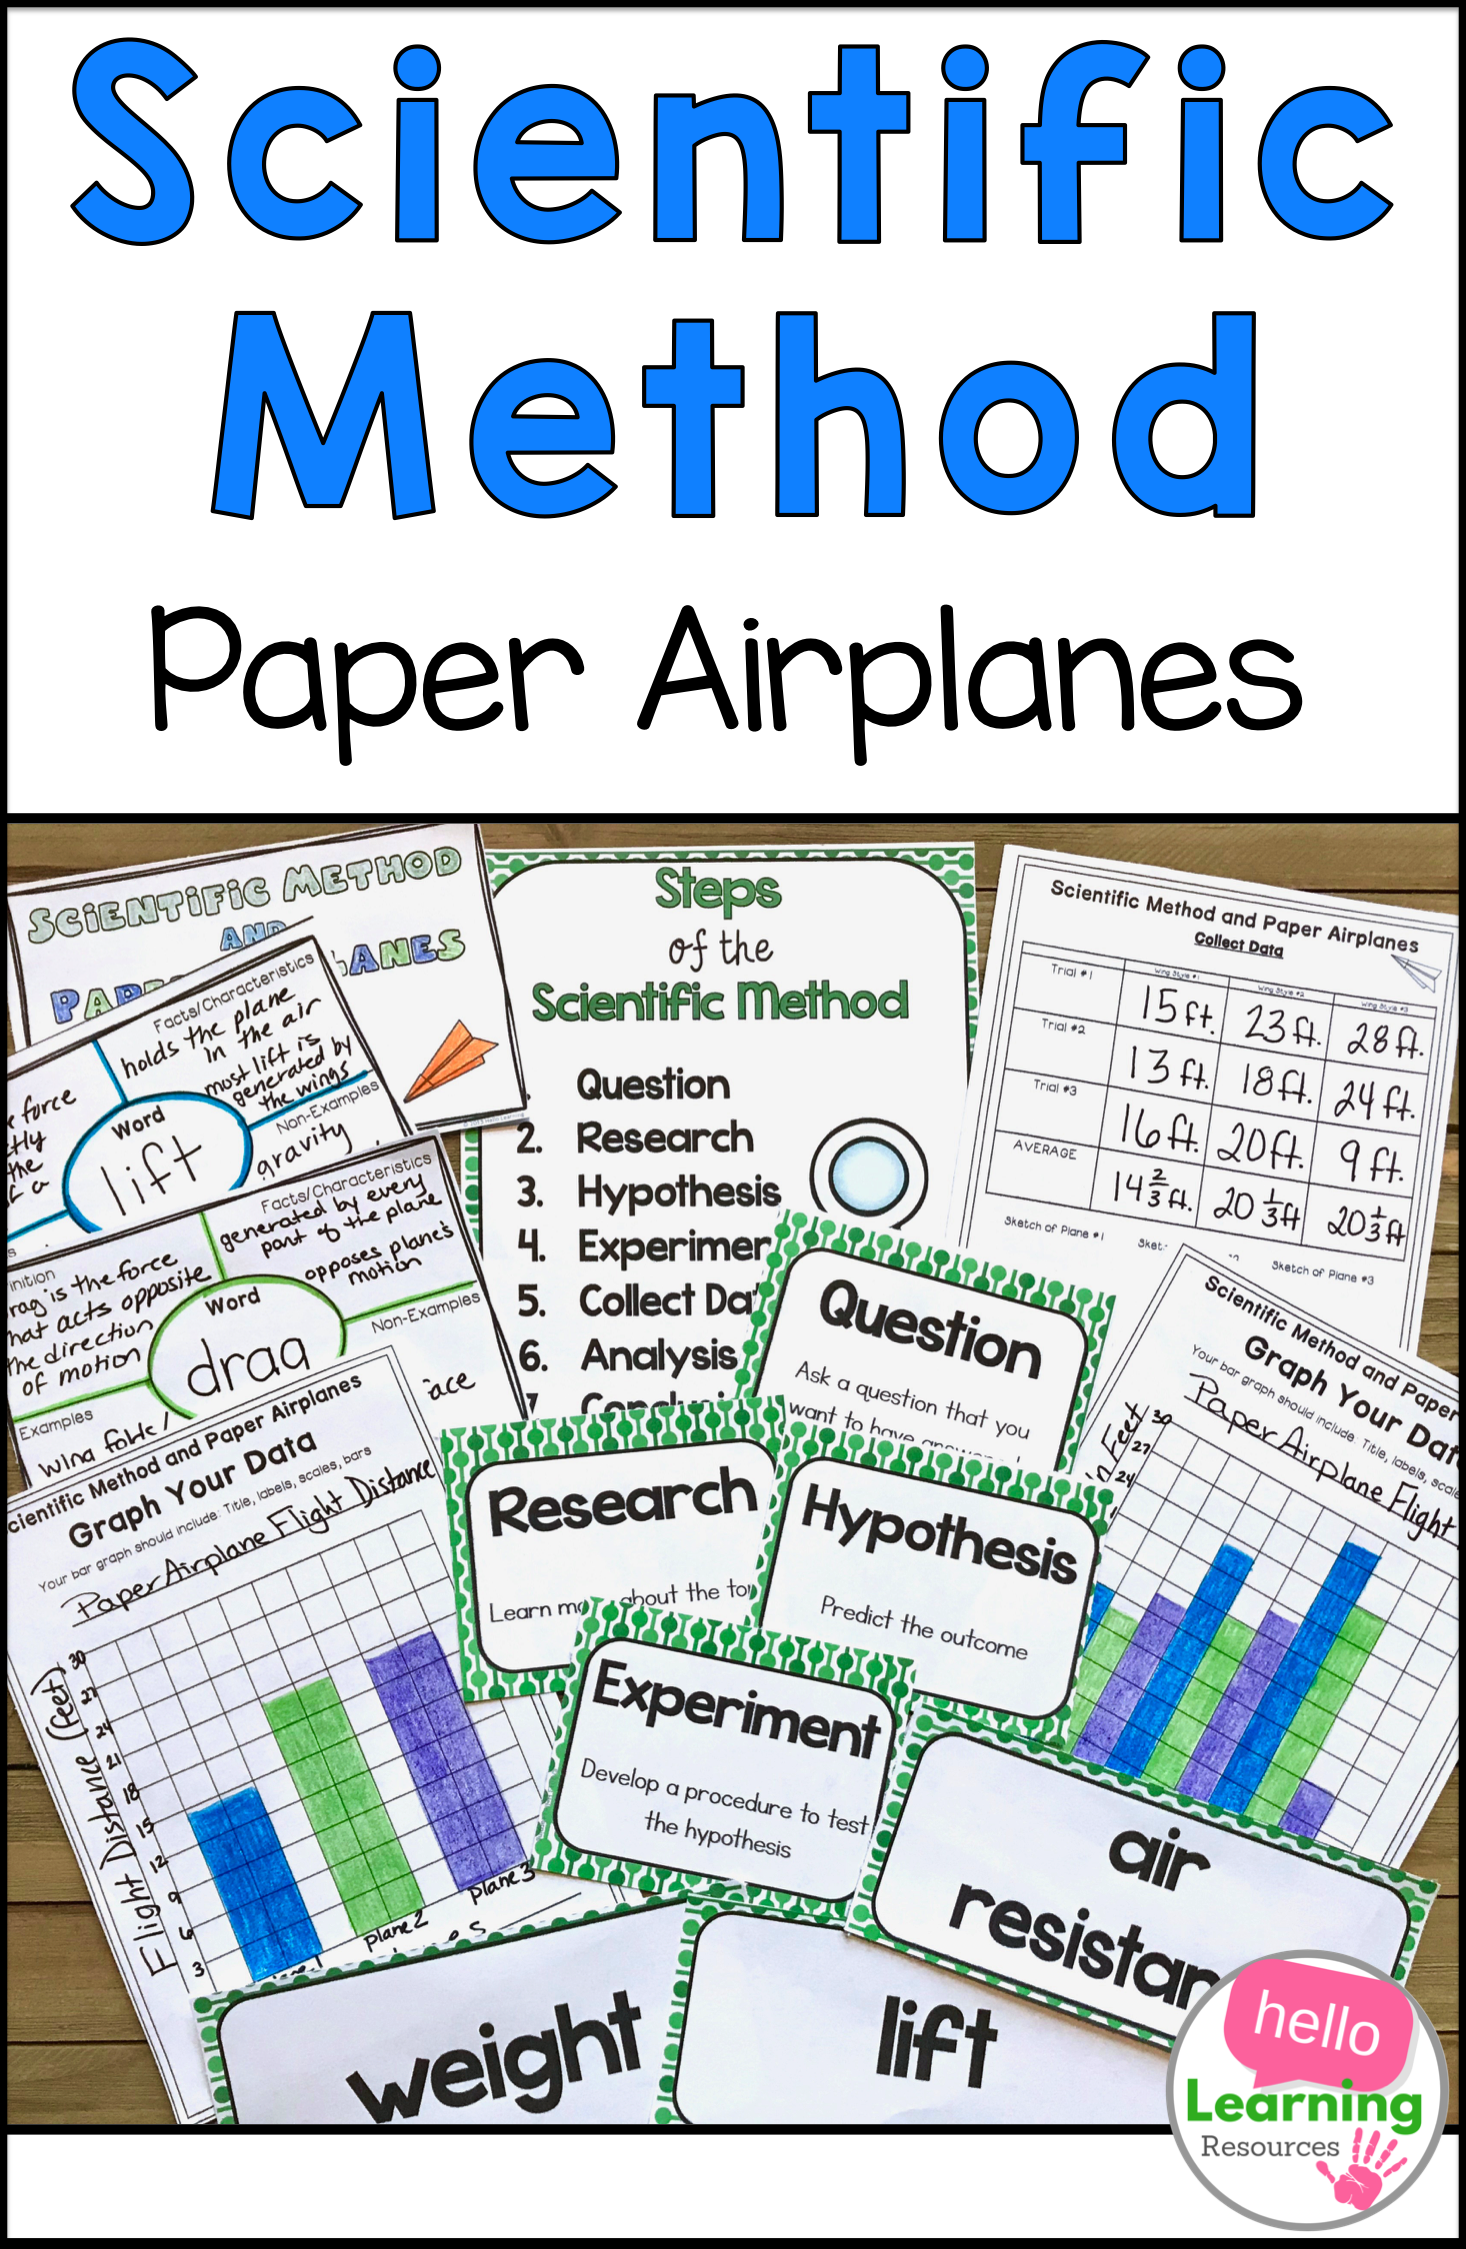 Scientific Method Experiment Paper Airplanes